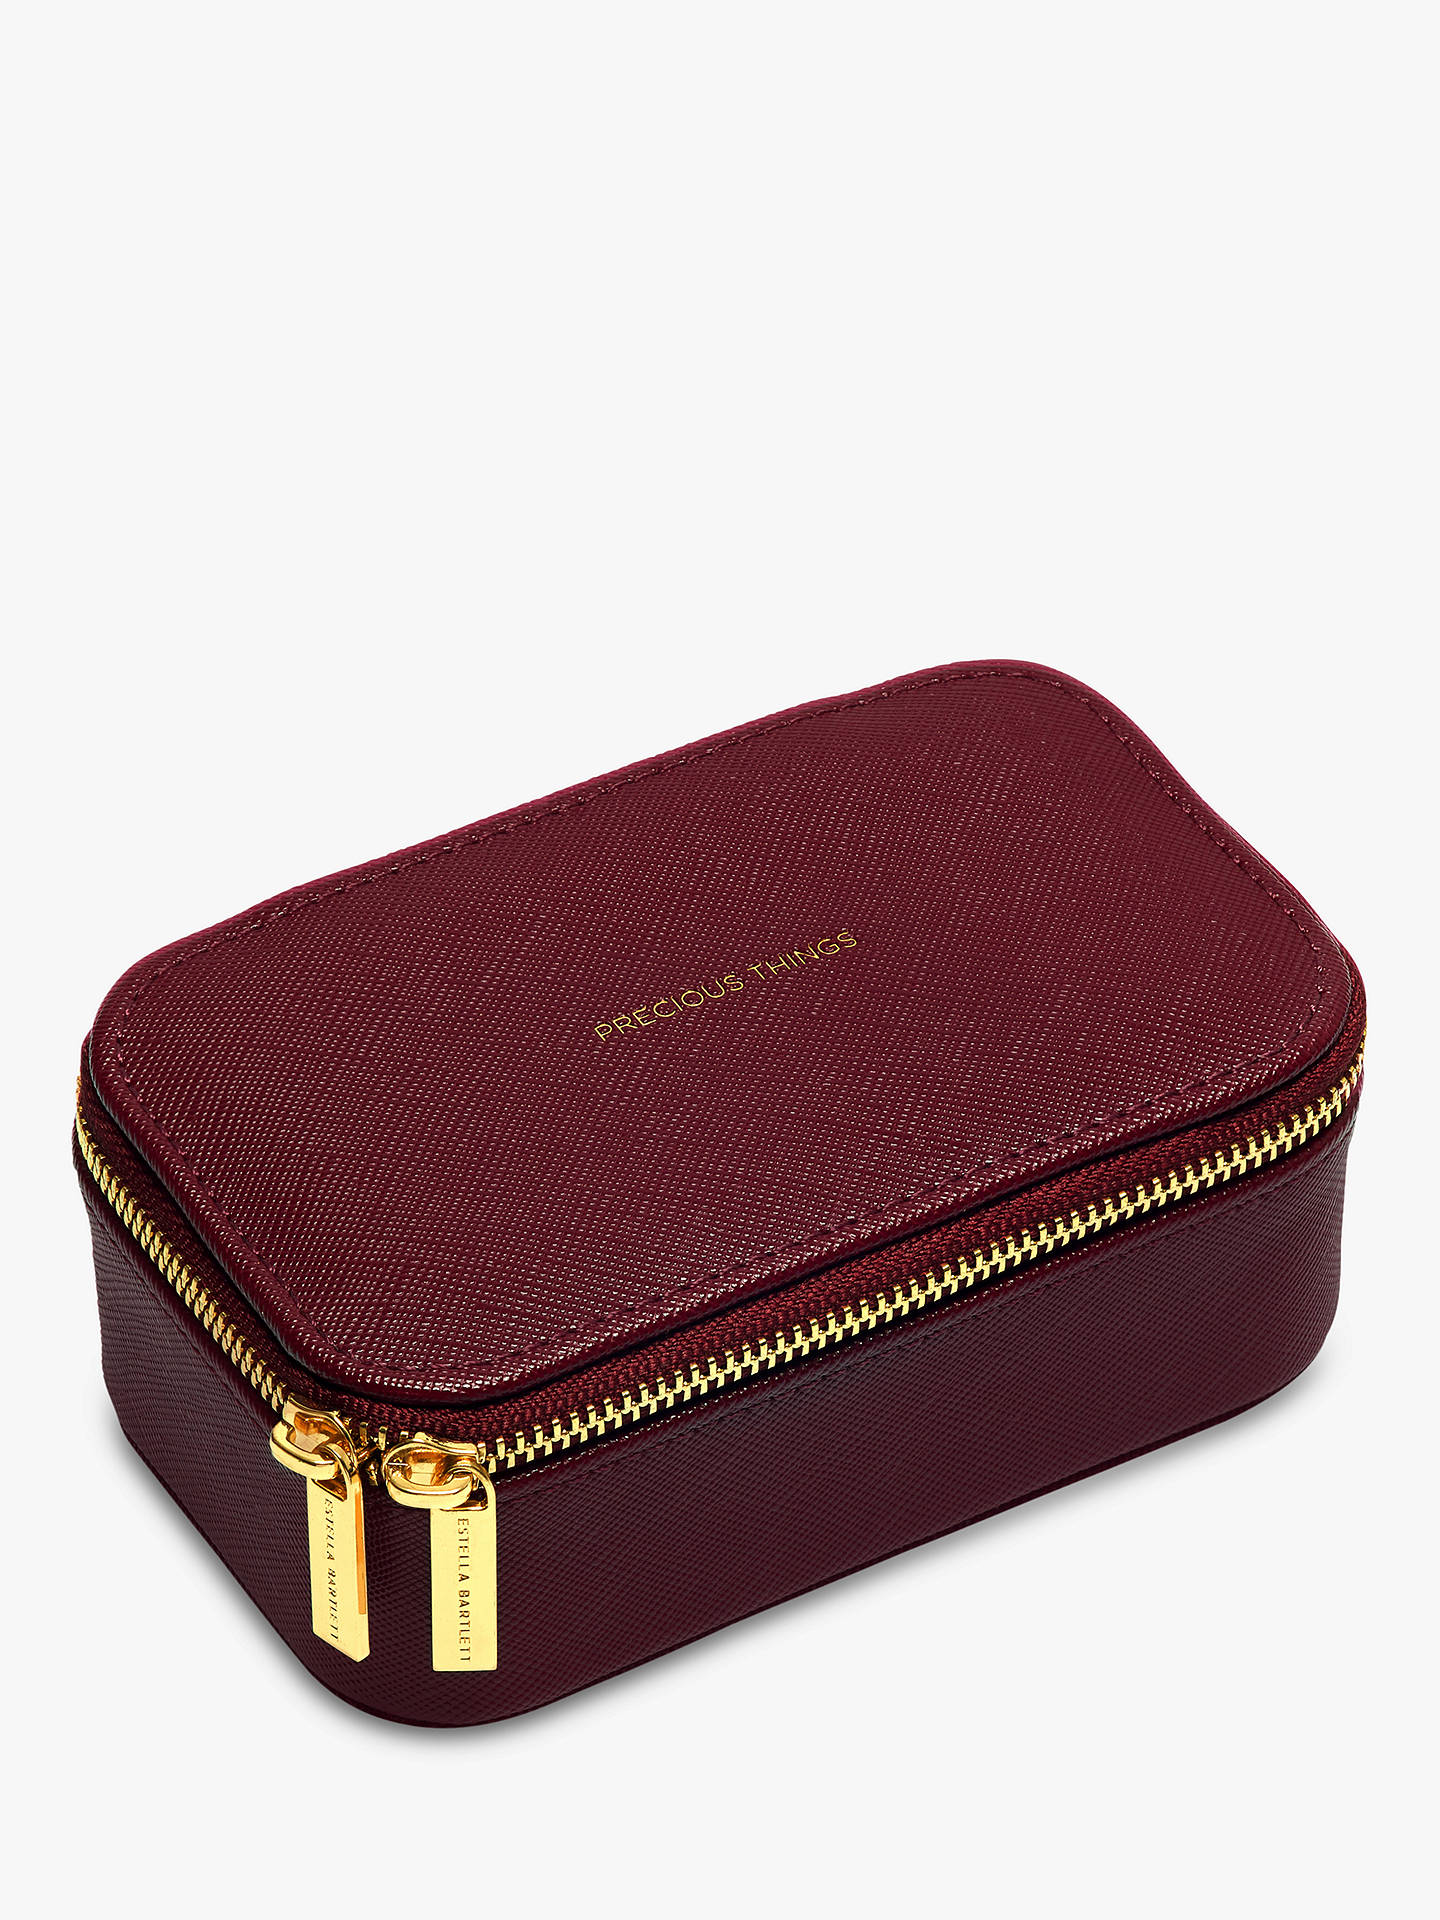 Buy Estella Bartlett Precious Things Mini Zipped Jewellery Box, Burgundy Online at johnlewis.com